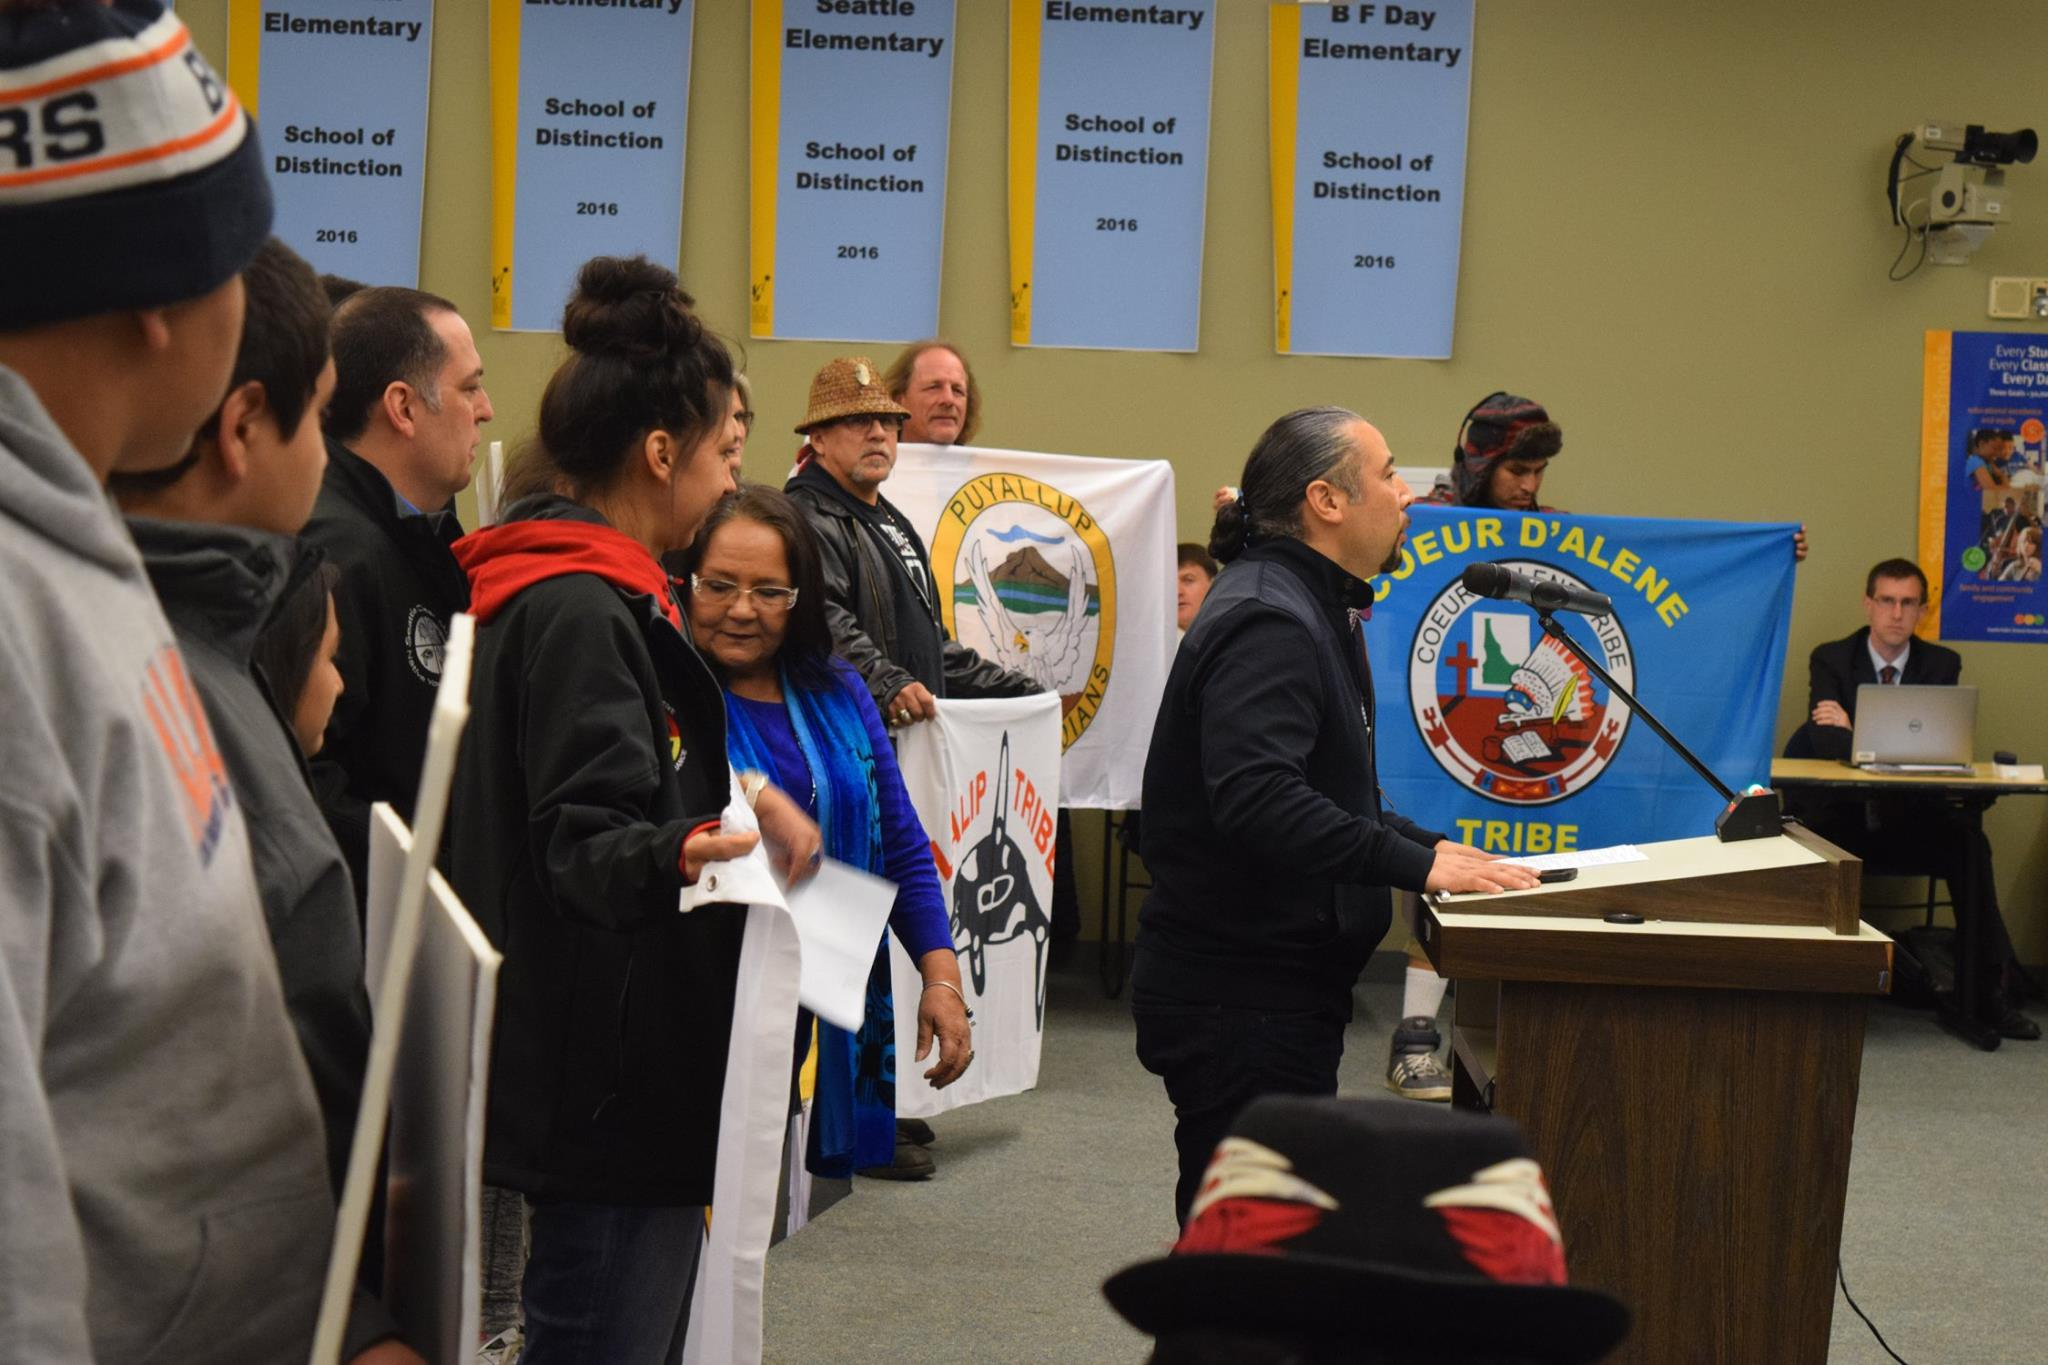 UNEA supporters speak out at Seattle public school board meeting in support on Native education